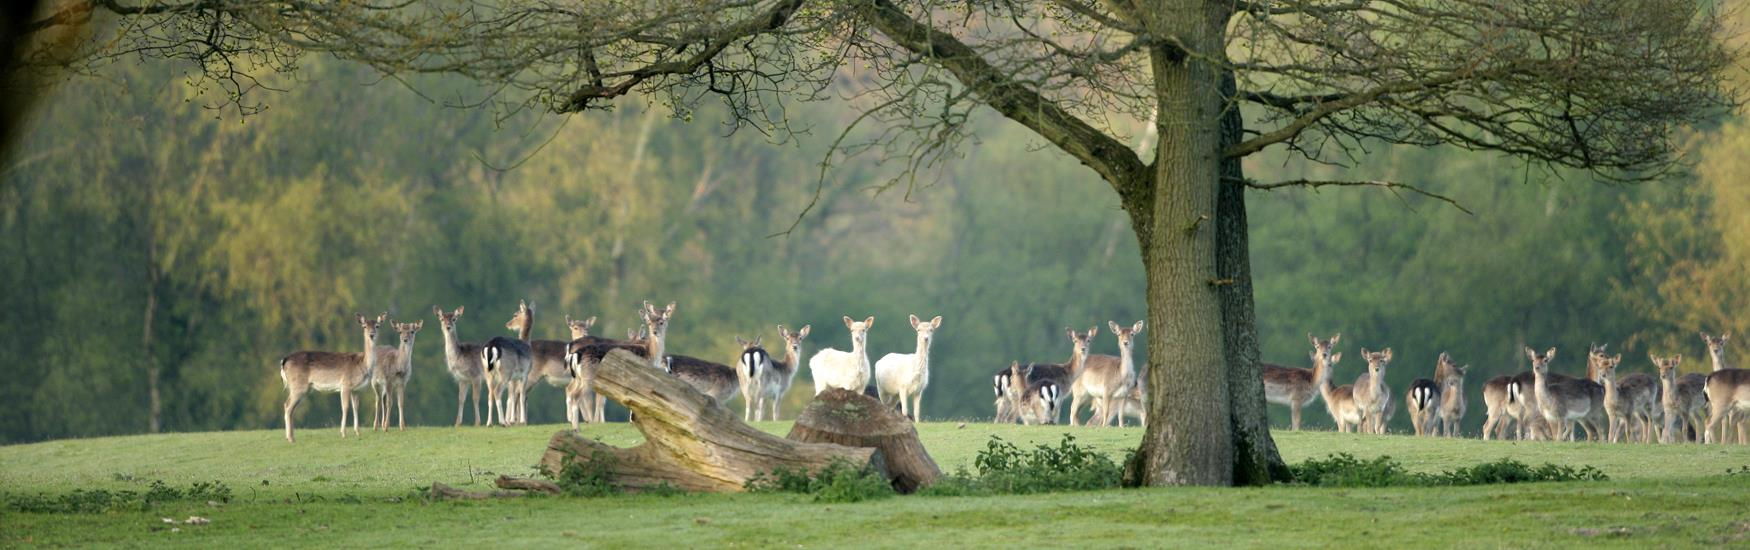 Discover the New Forest © New Forest District Council